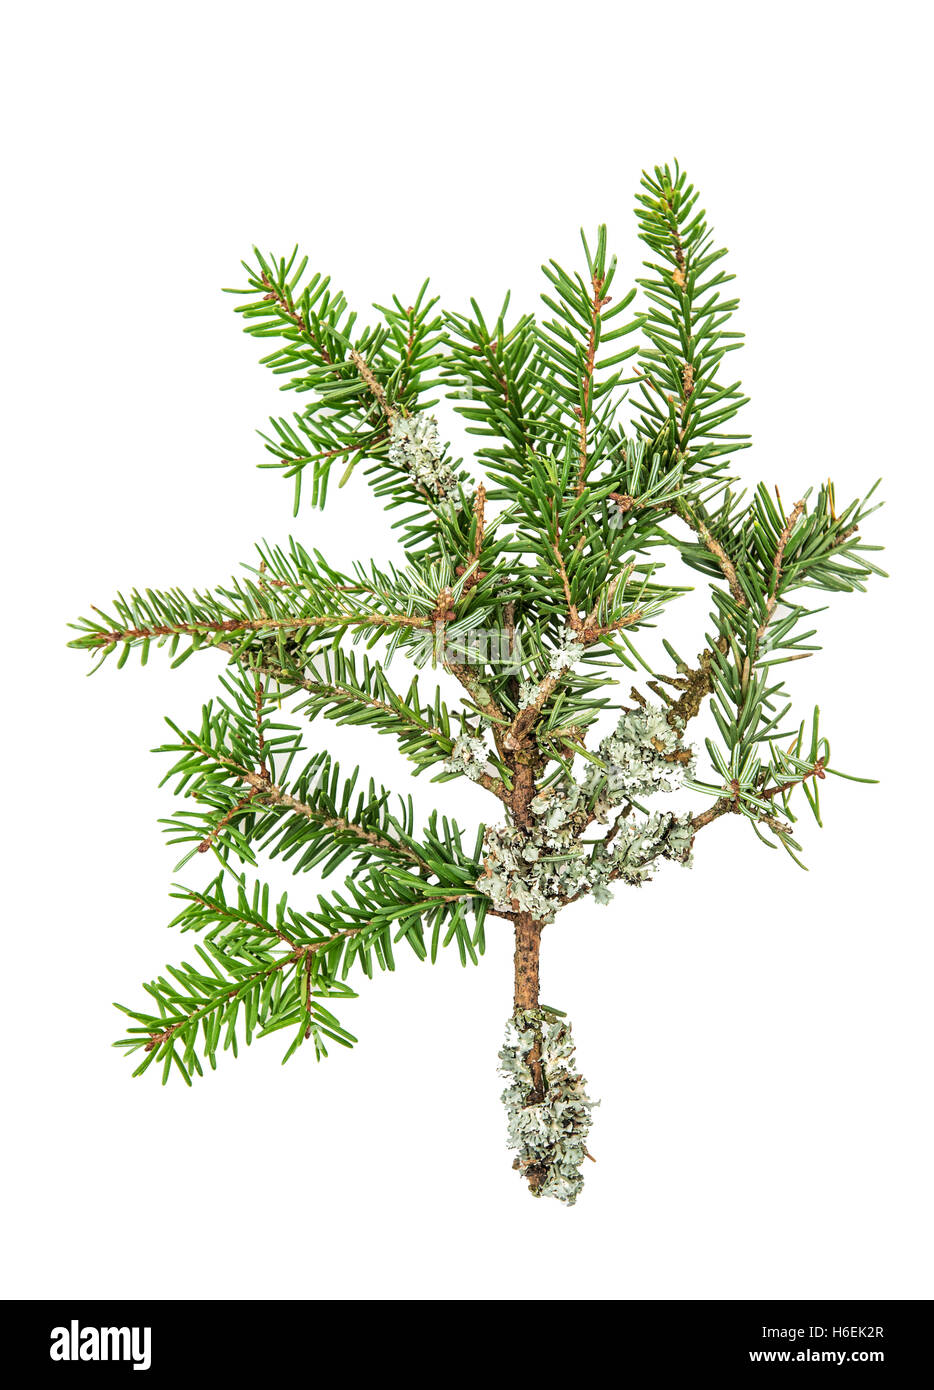 Pine sprig. Fresh green fir. Christmas tree branches isolated on white background - Stock Image